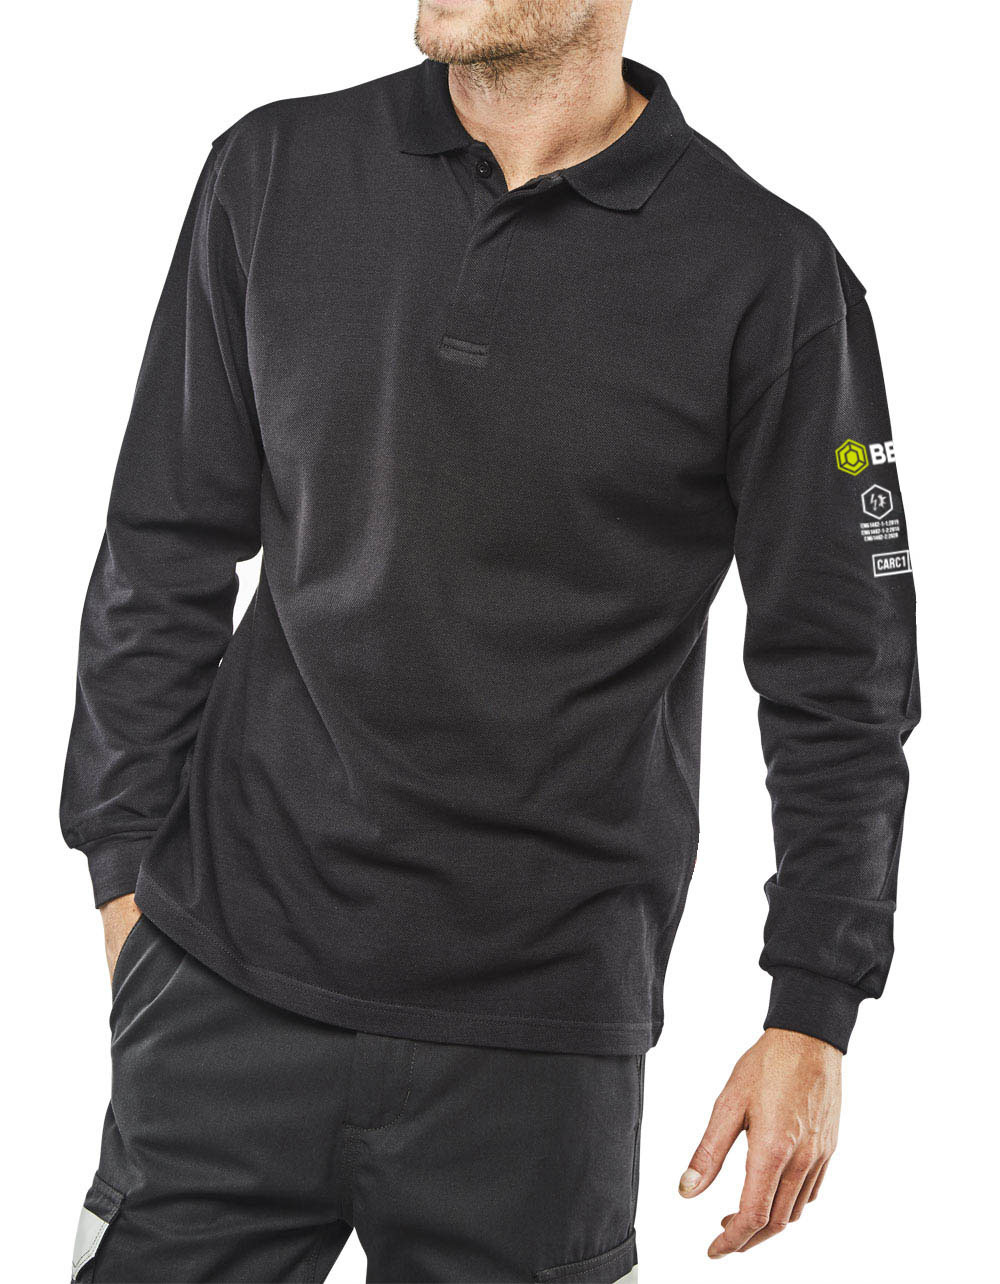 ARC FLASH POLO SHIRT - CARC1